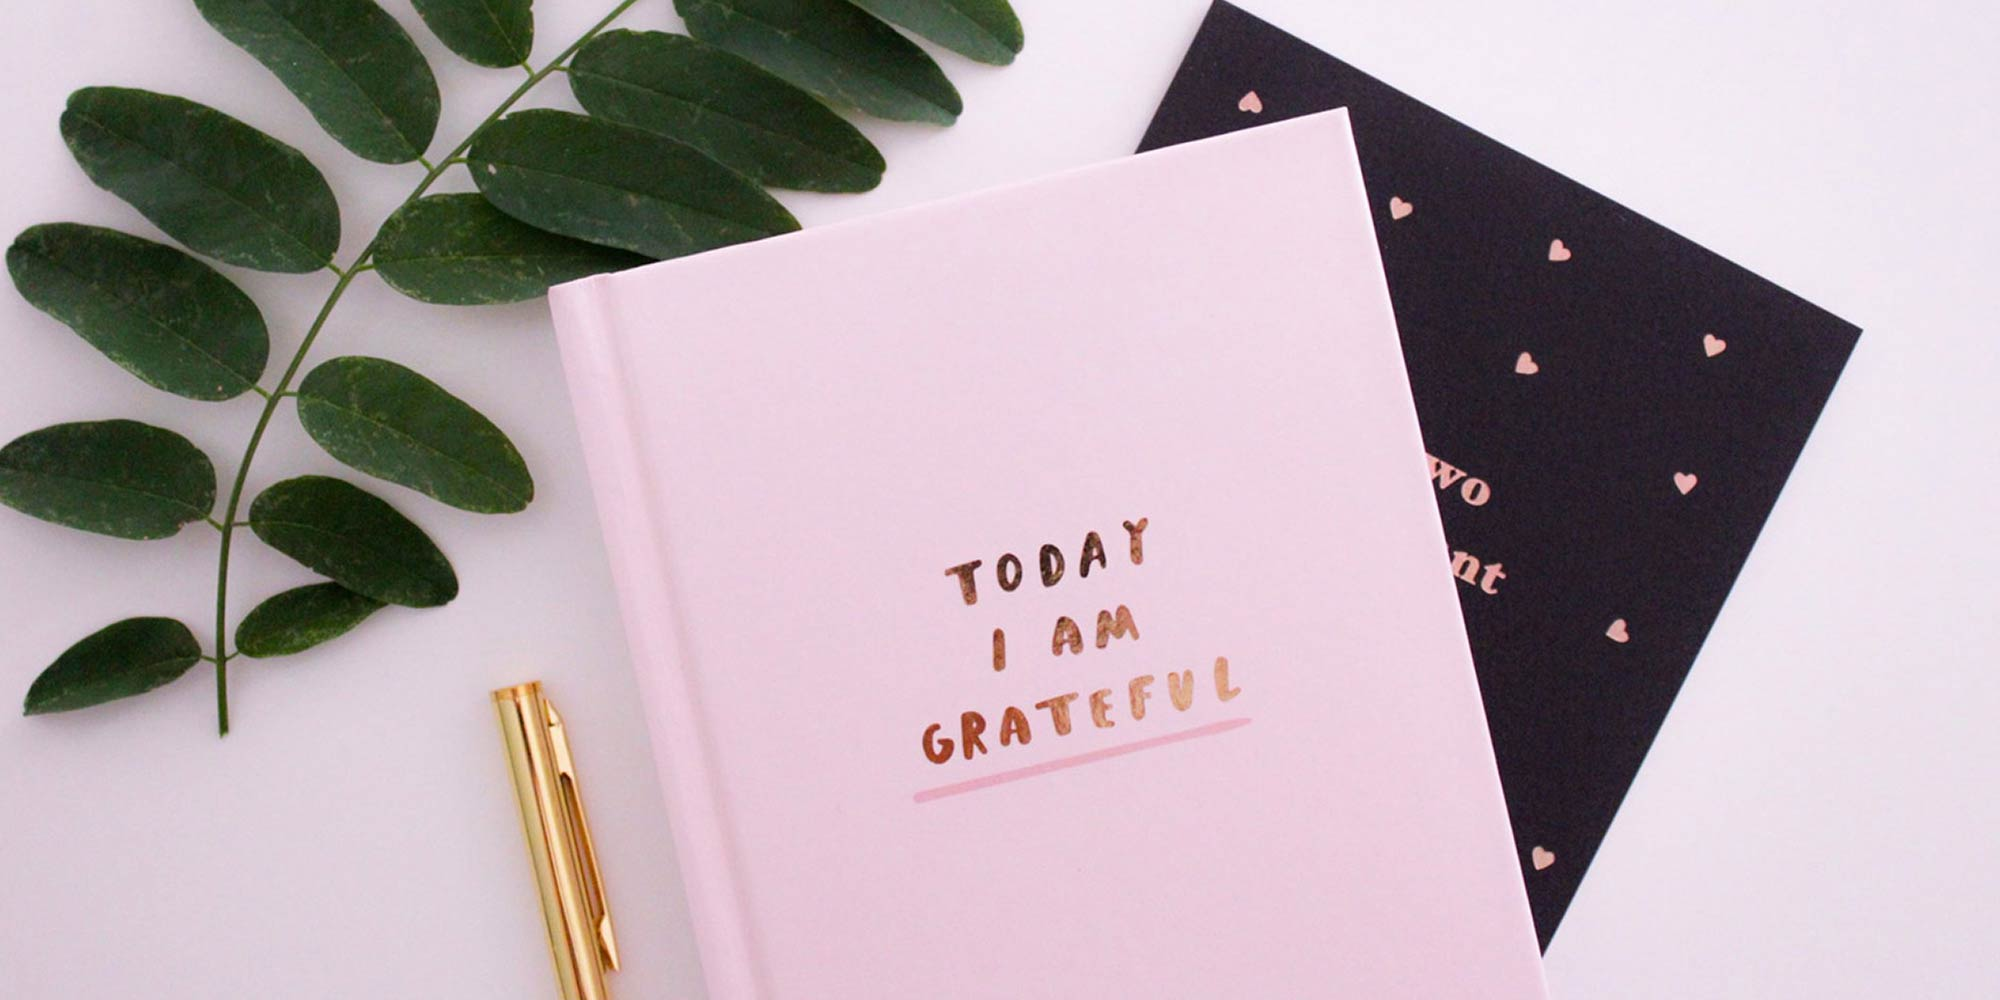 Gratitude journals and greenery on a pink background